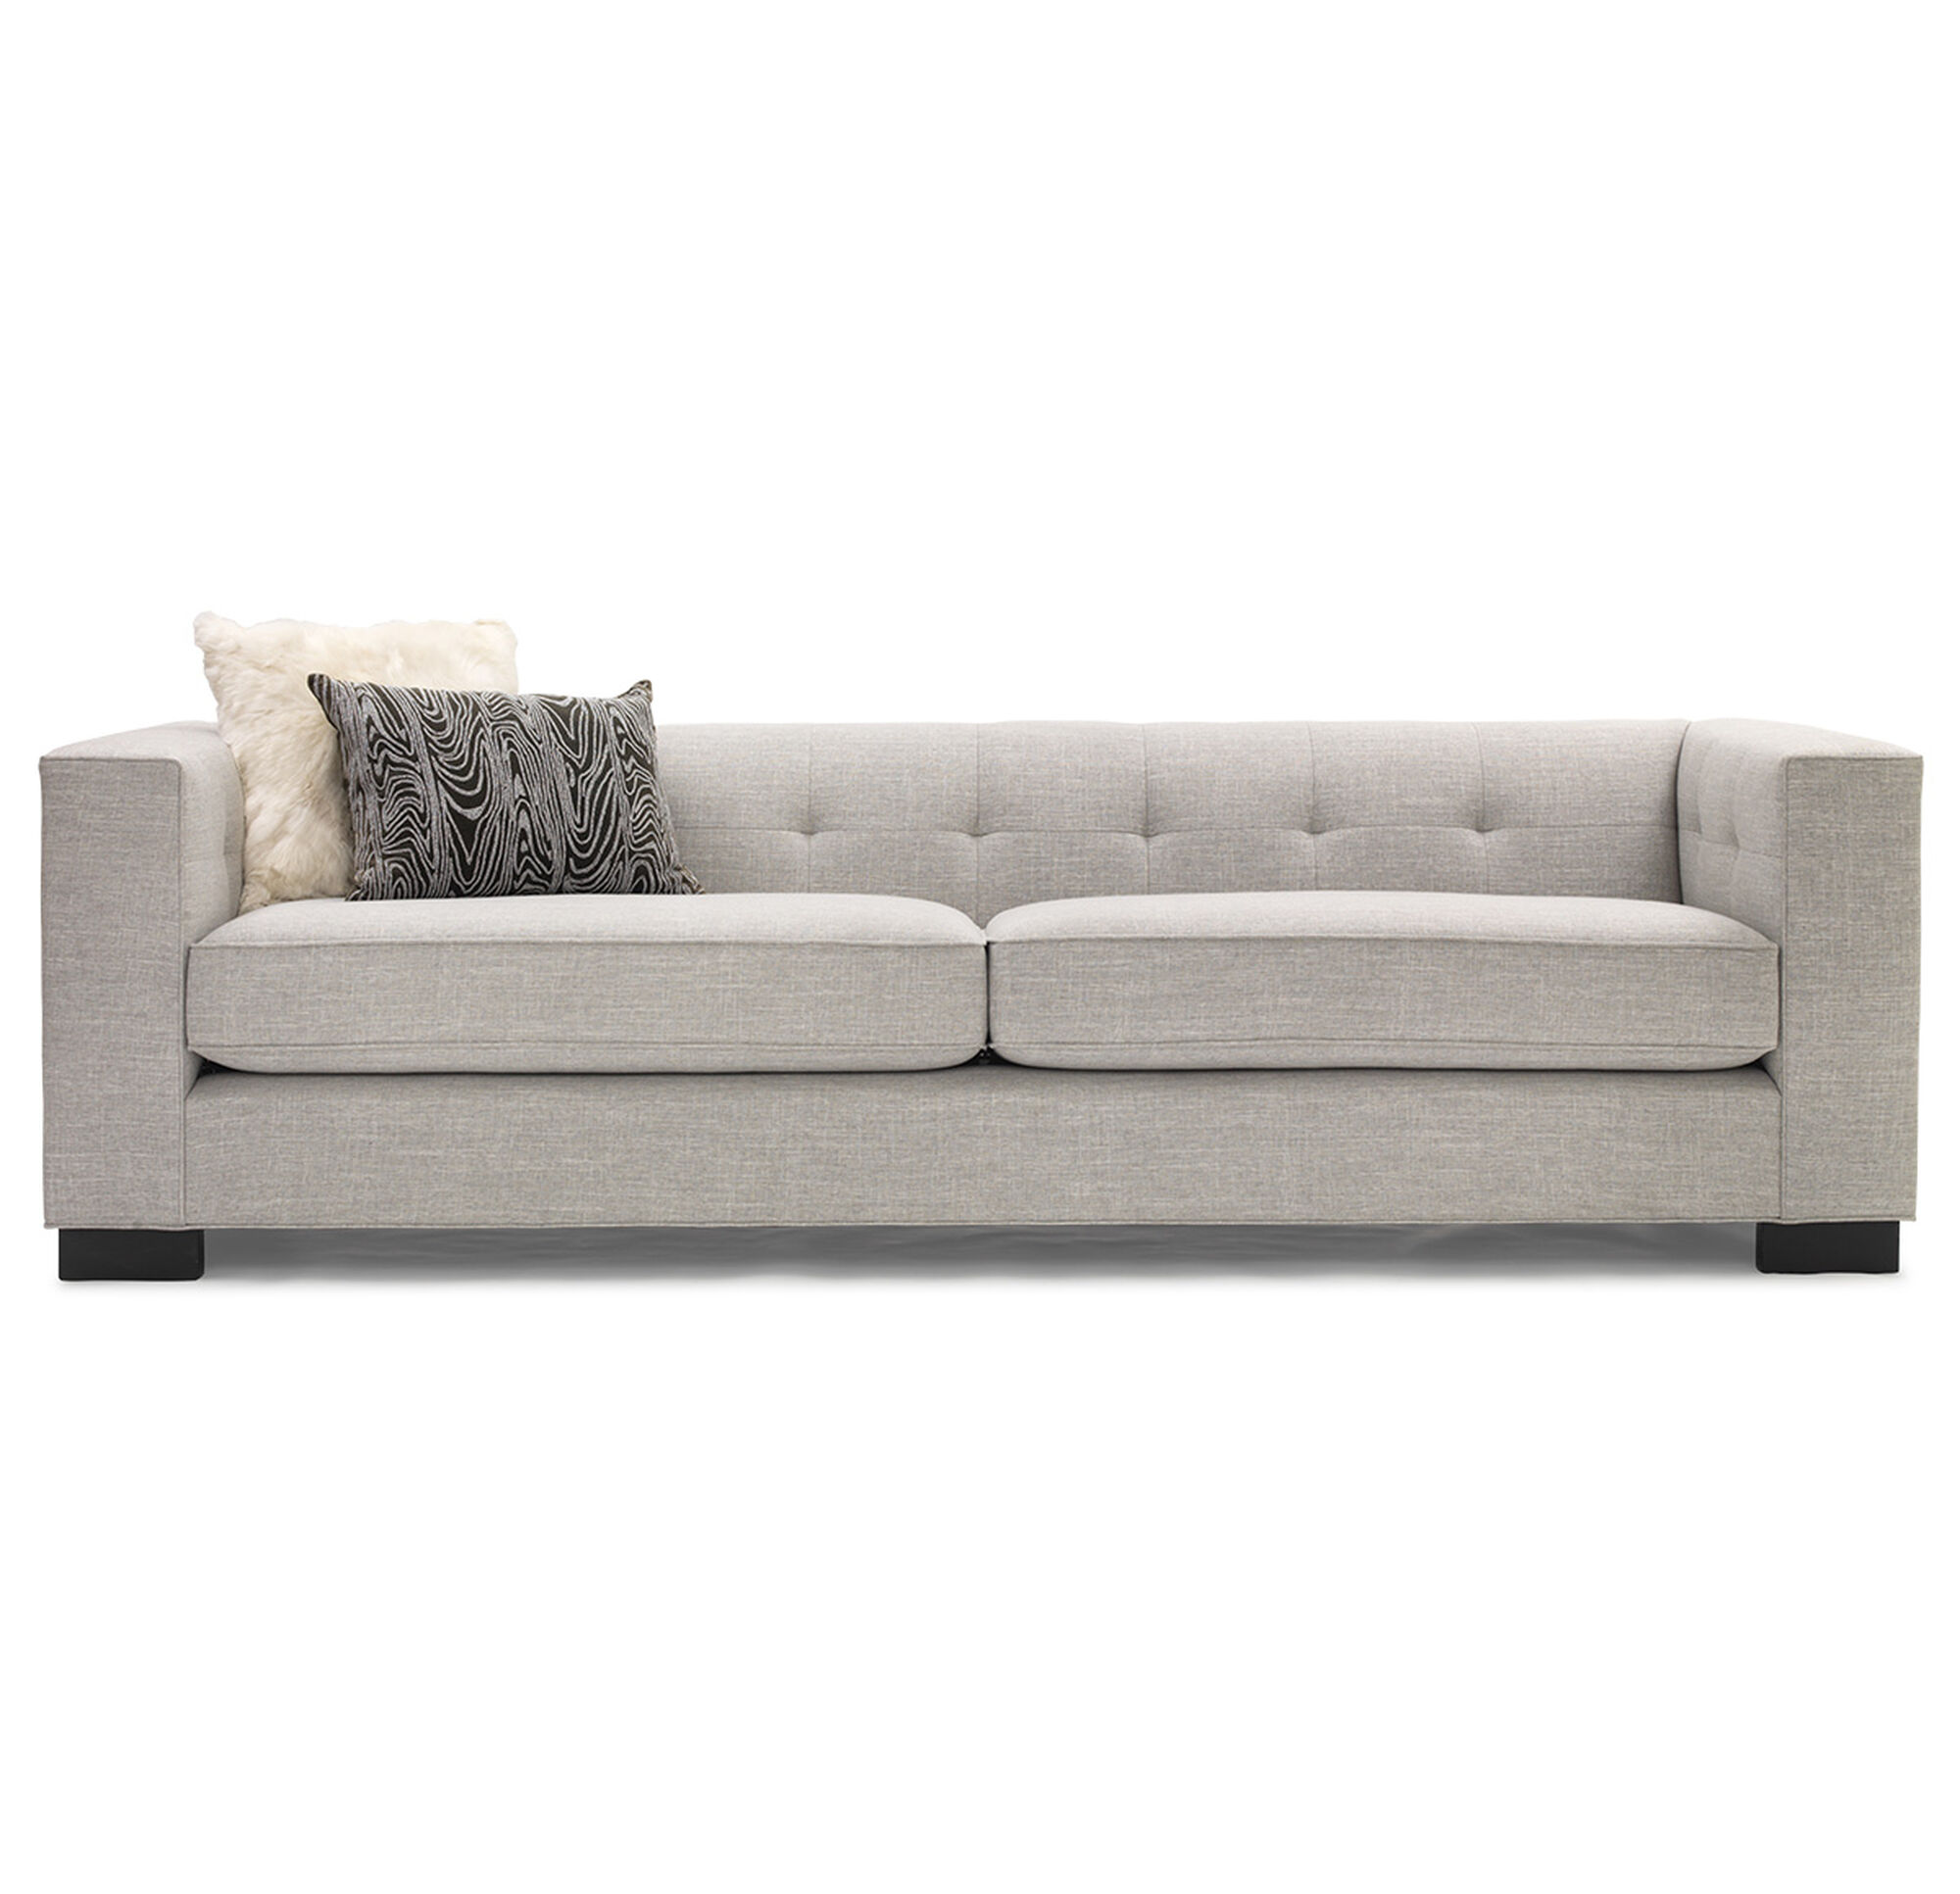 Mgbw Sofa 64 Best Sofas Images On Pinterest Mitc Gold And